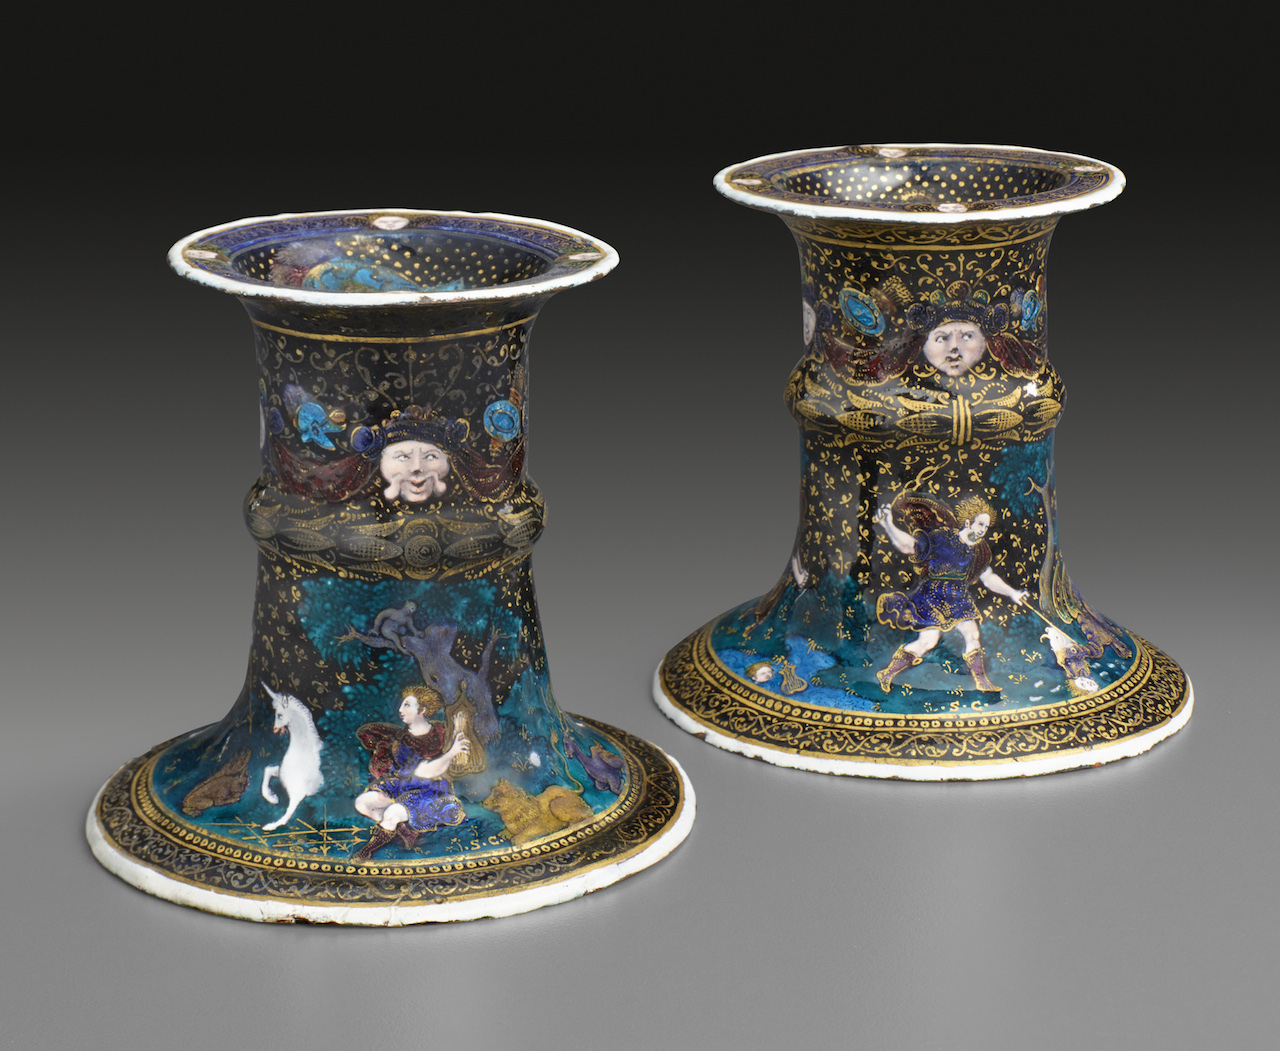 "Suzanne de Court, ""Pair of Saltcellars: Scenes from the Story of Orpheus"" (late 16th or early 17th century), enamel on copper. Height: 3 1/2inches; Diameter: 3 9/16 inches. (courtesy The Frick Collection, photo by Michael Bodycomb)"